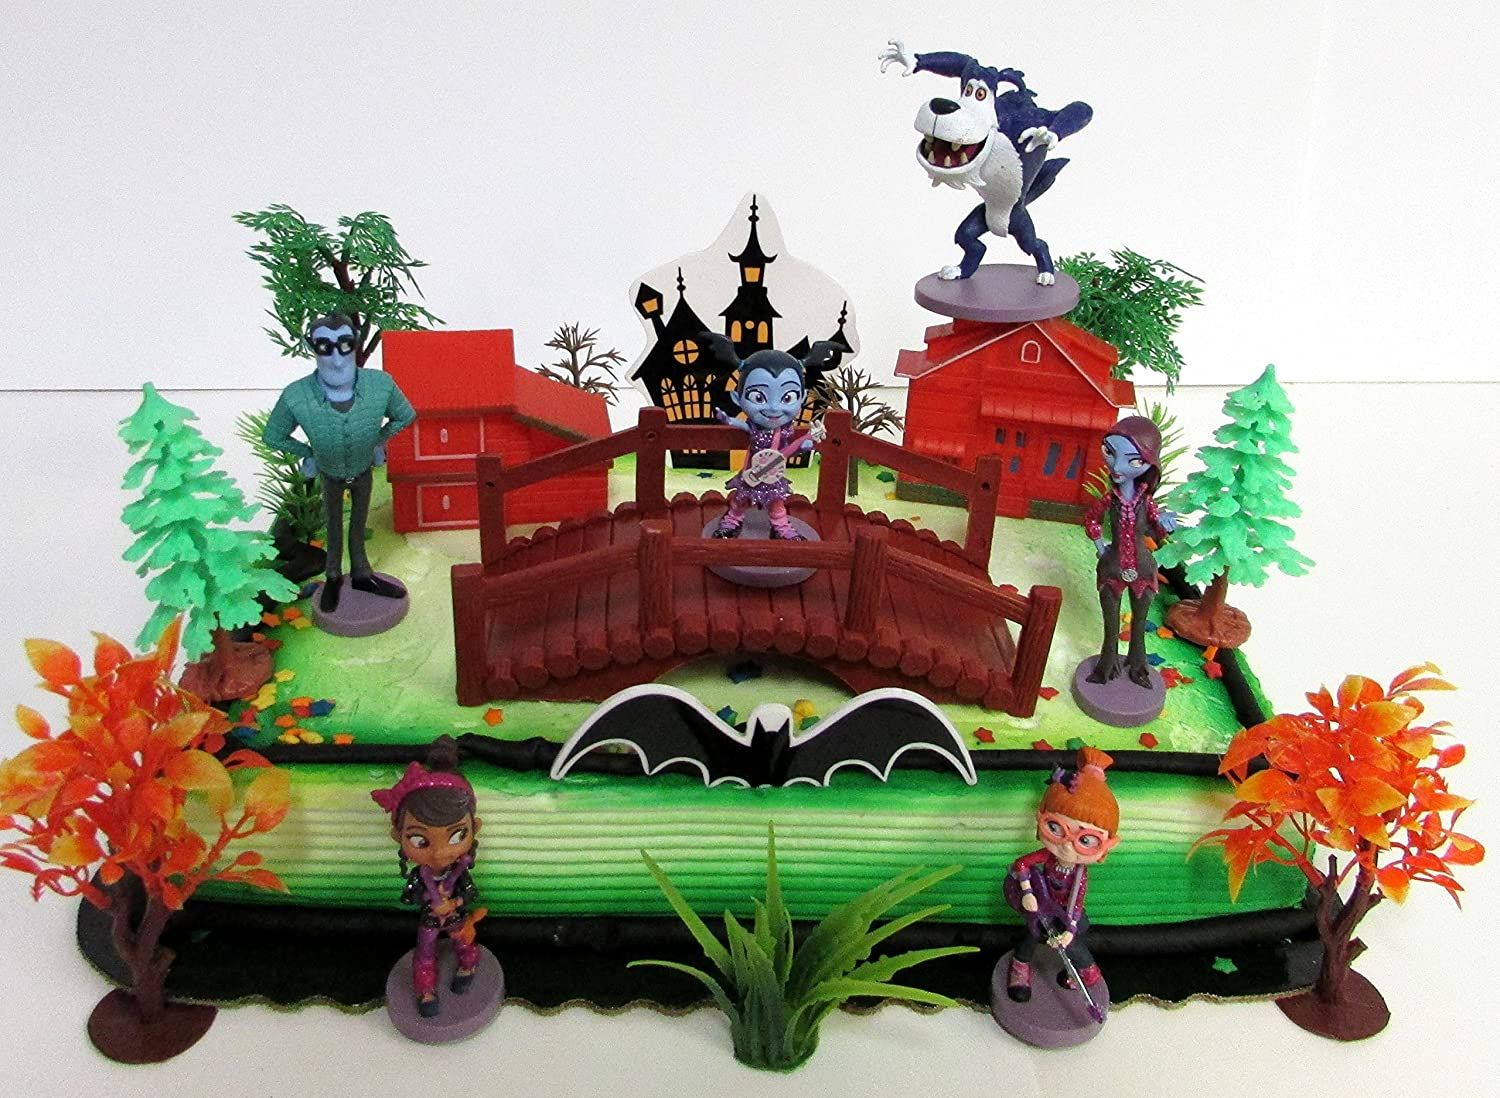 Vampirina Birthday Cake Topper Set Featuring Vee and Friends Figures and Decorative Themed Accessories